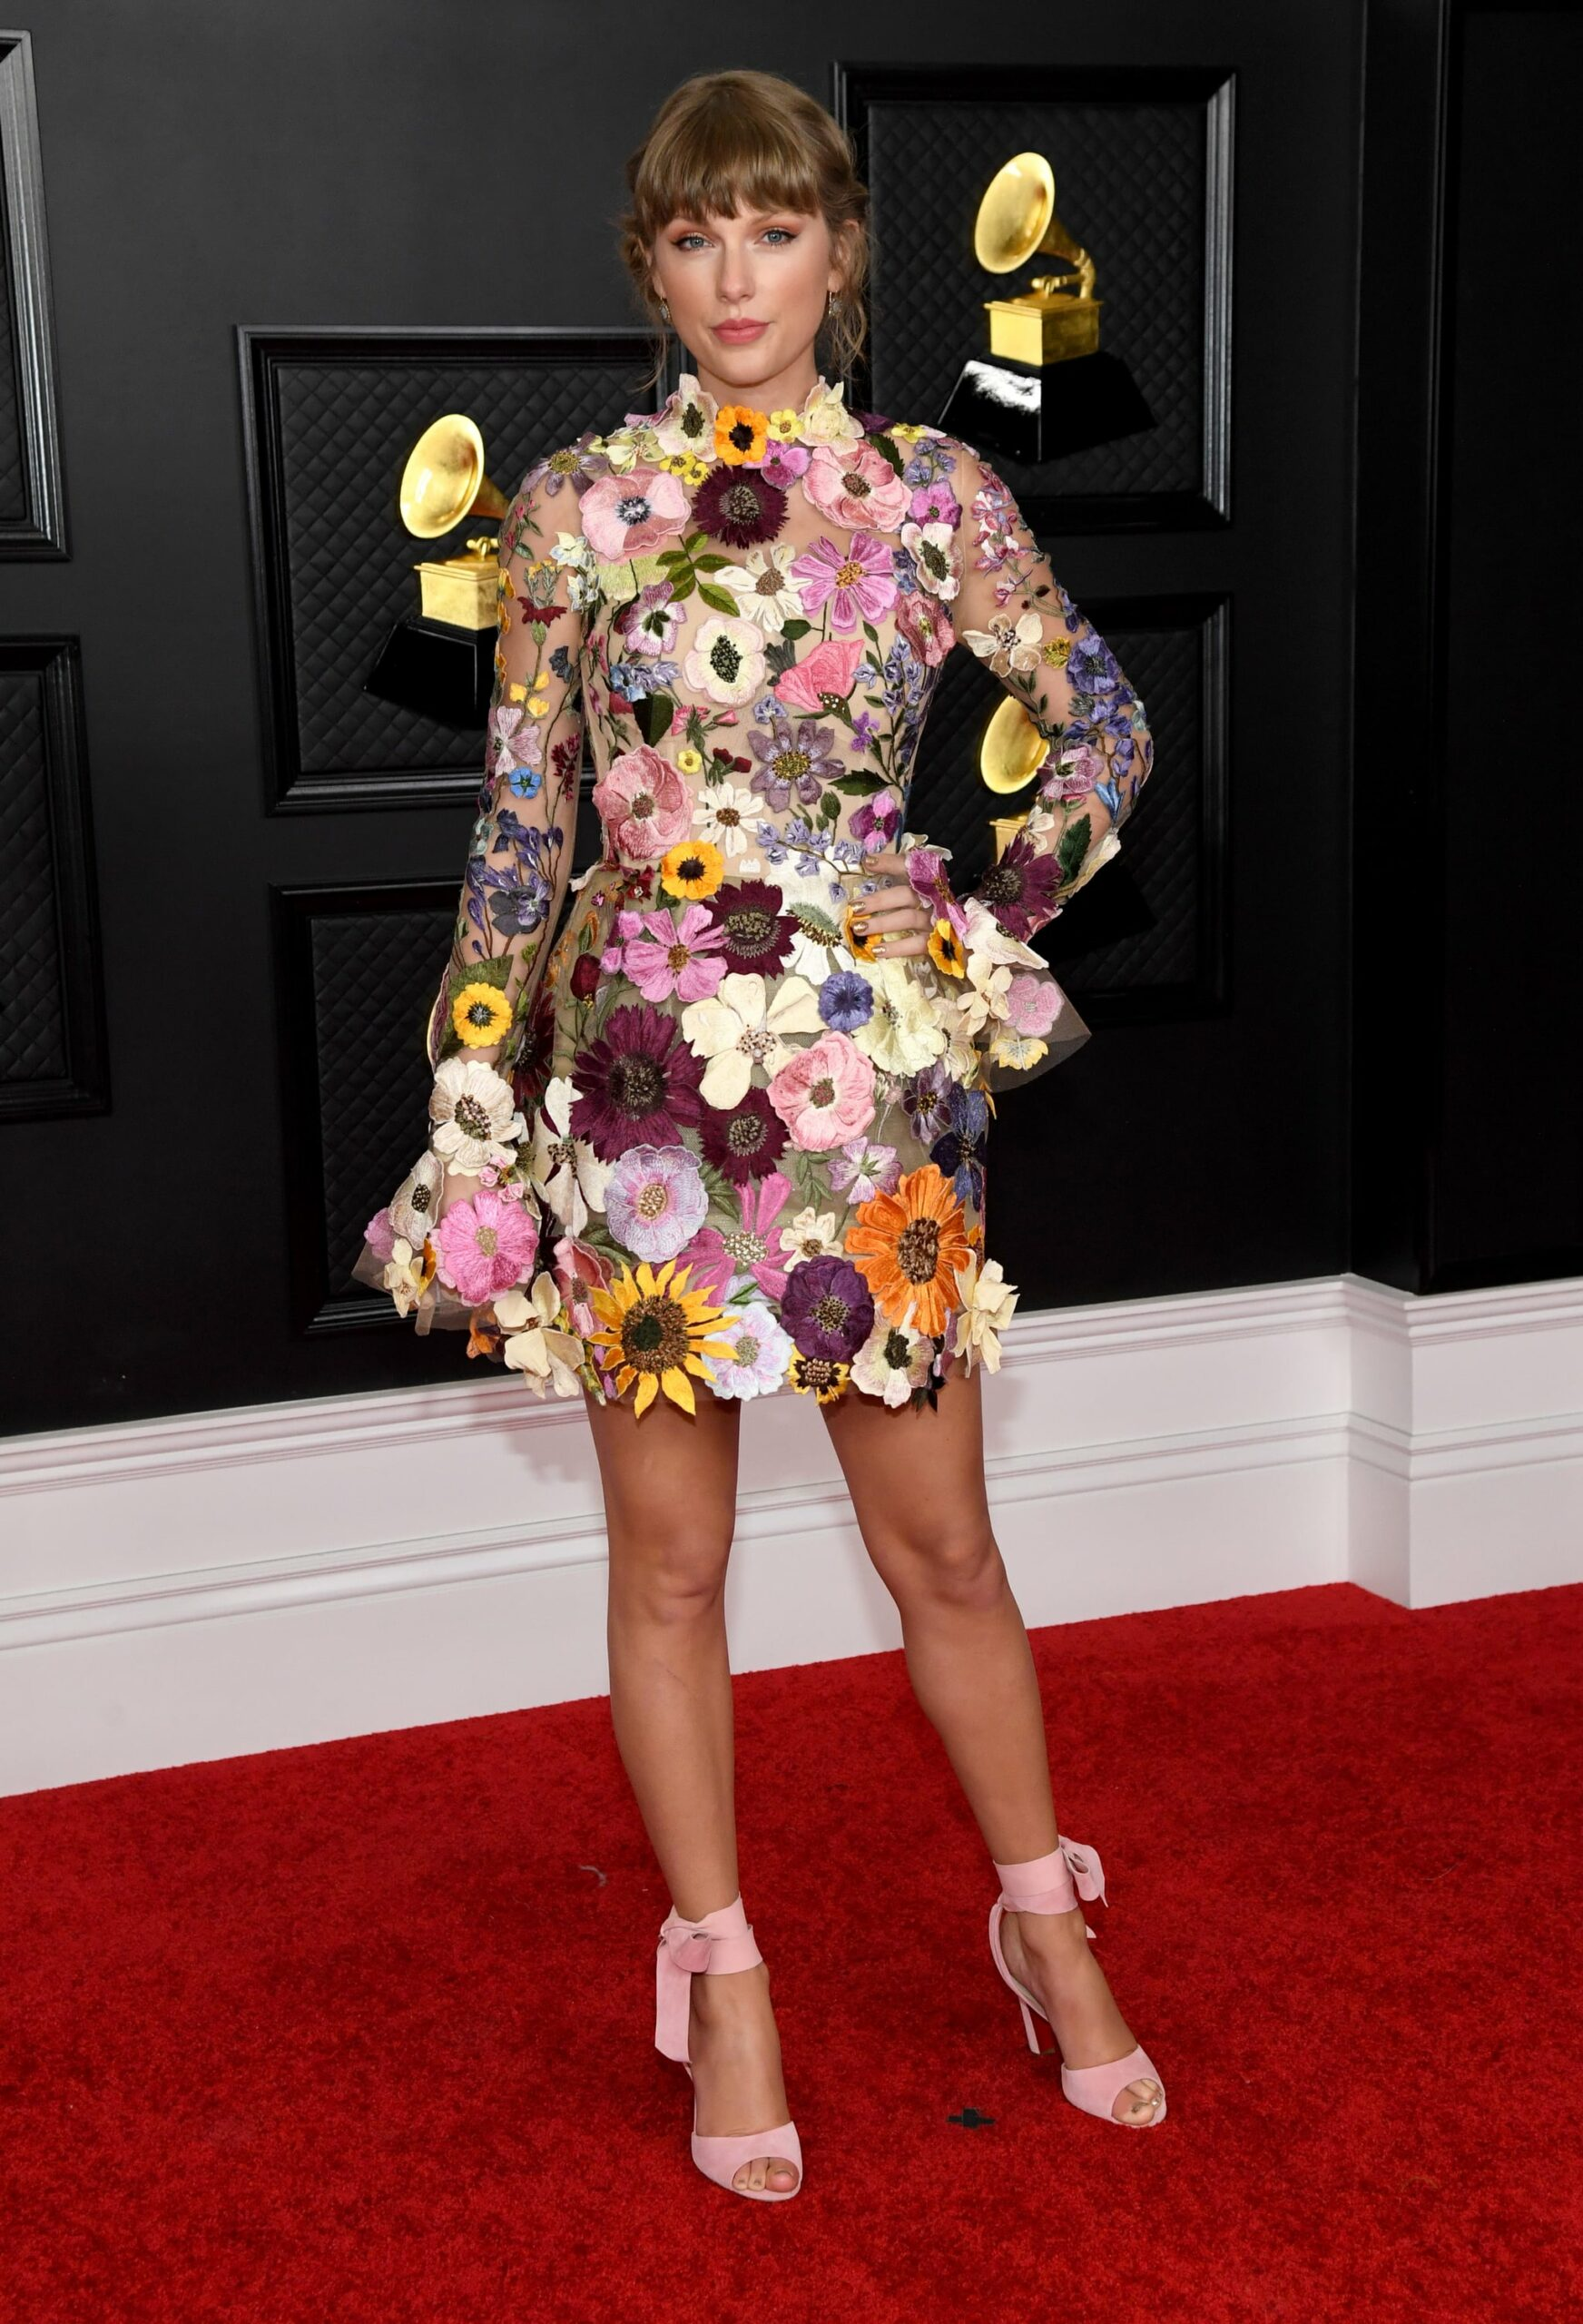 Taylor Swift posing on the red carpet at the Grammys 2021.